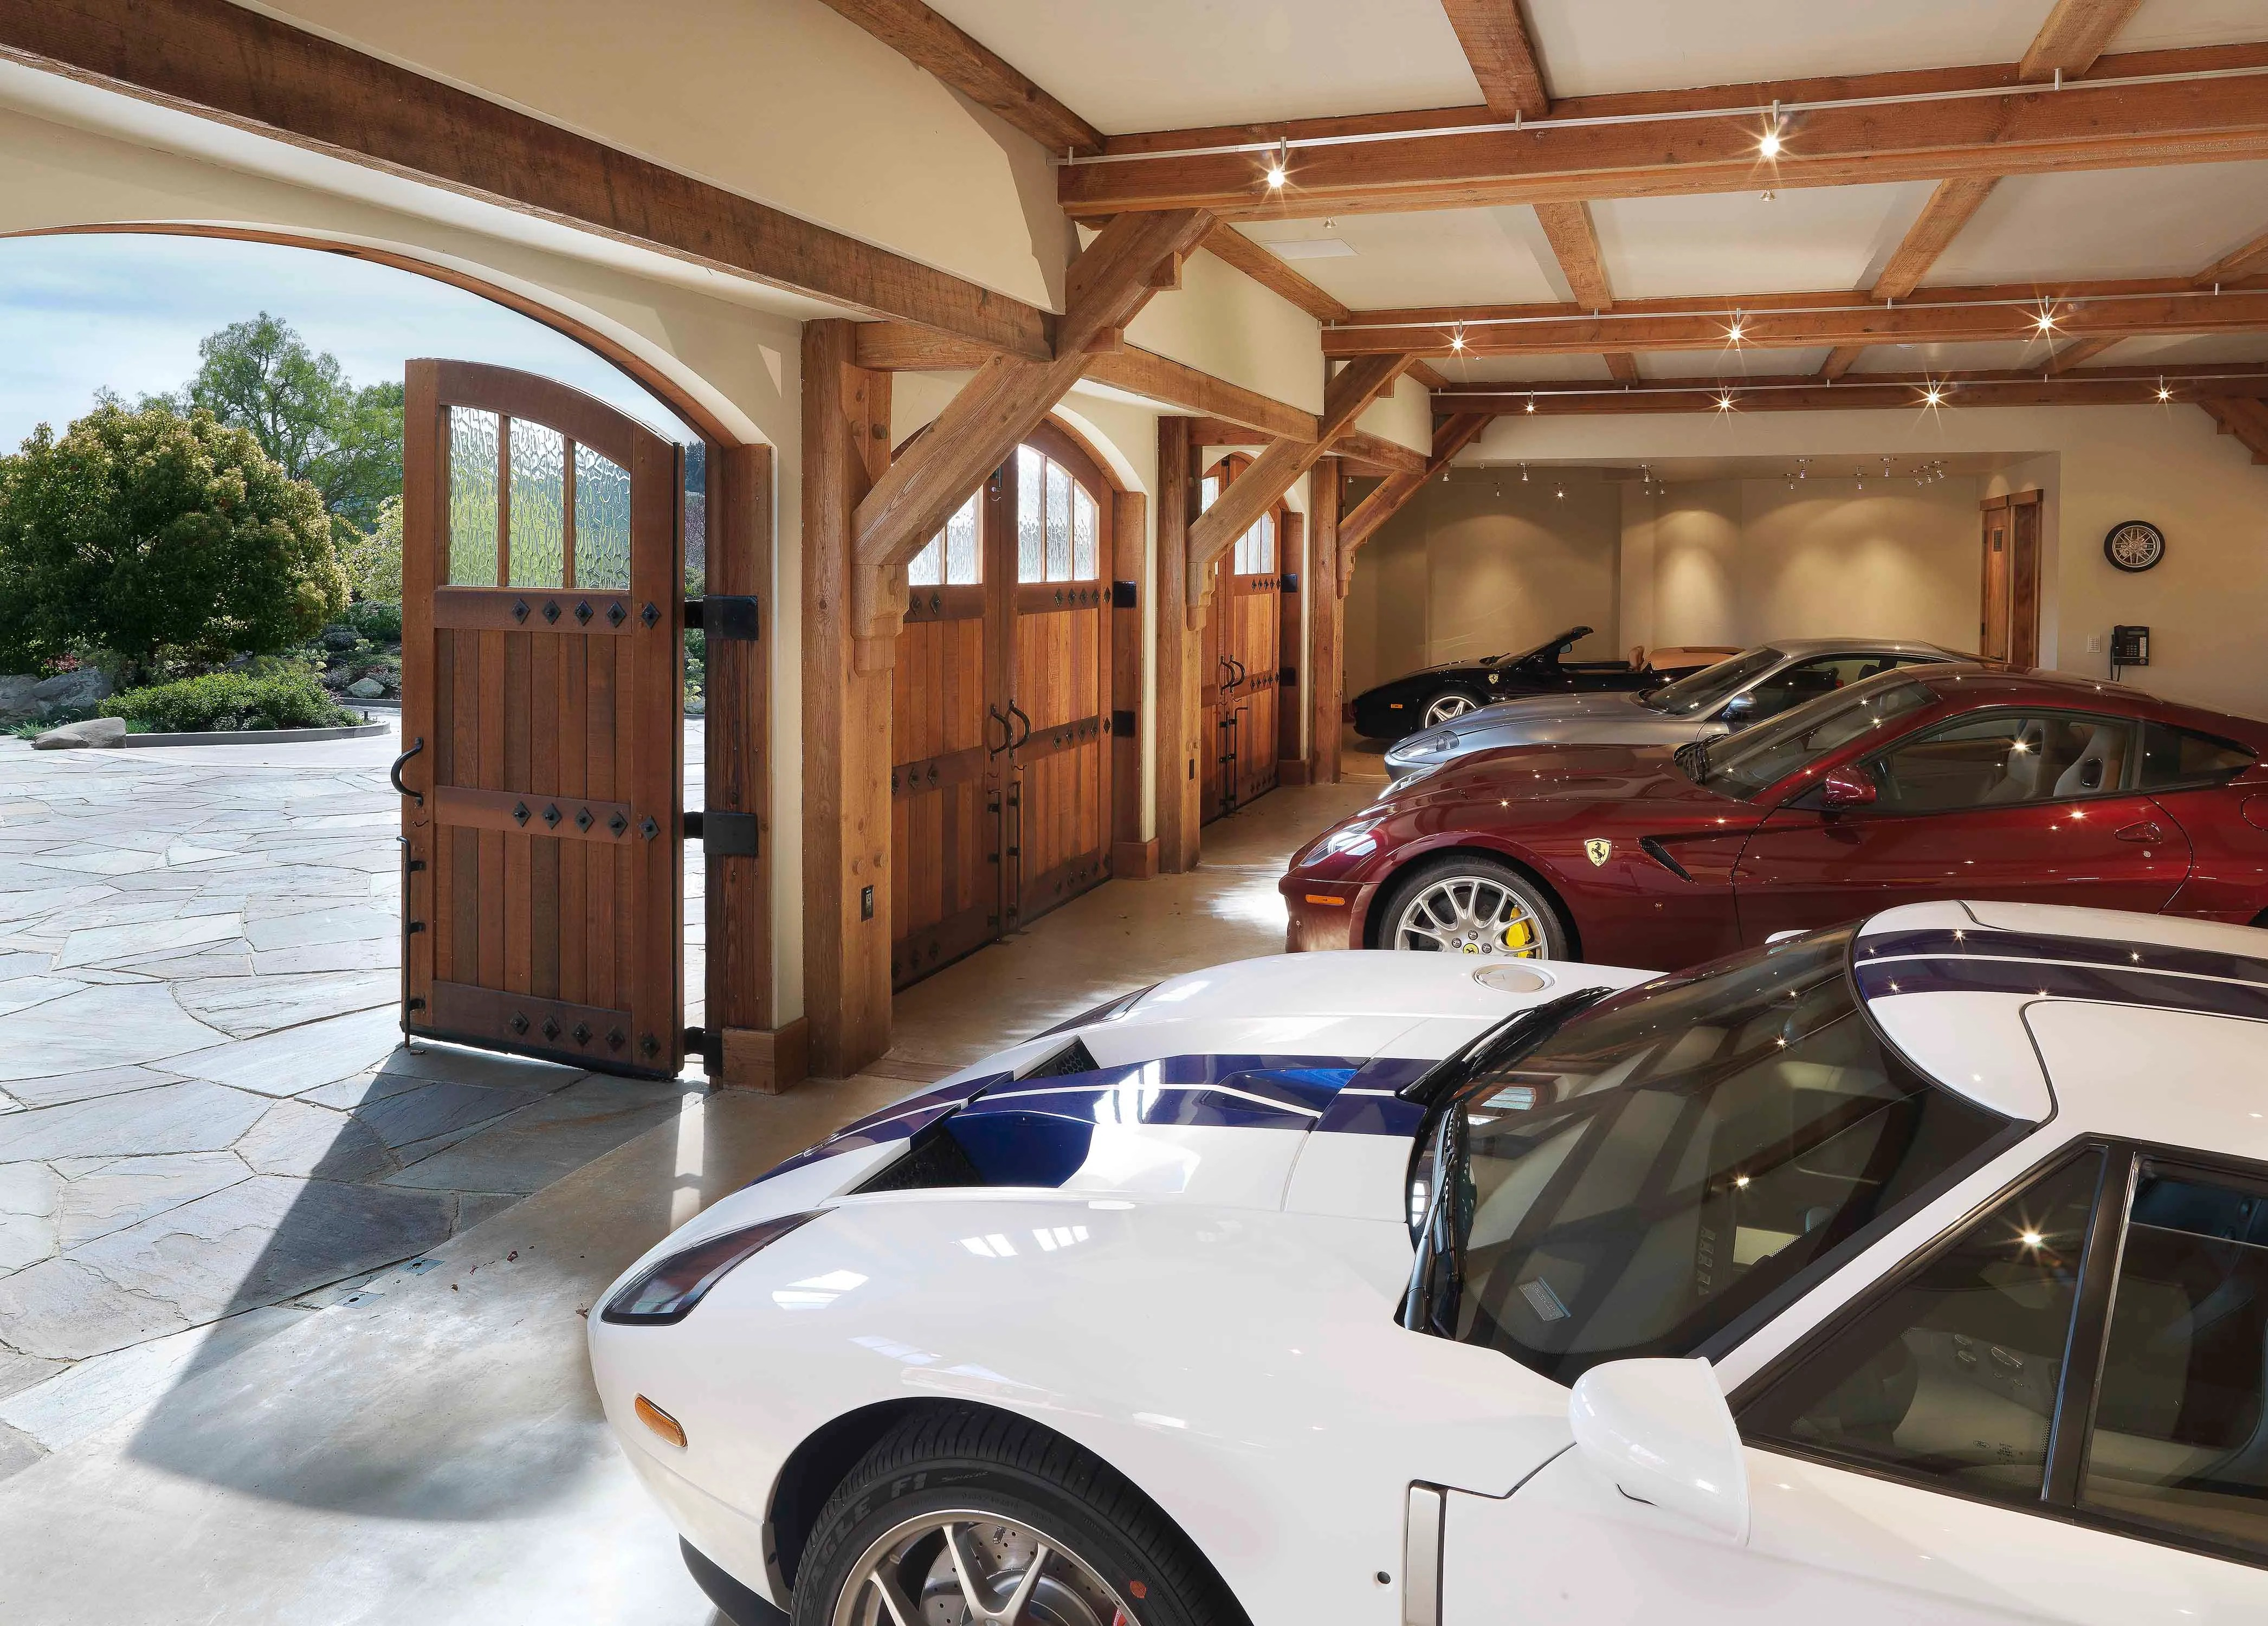 Luxury Toy Boxes Homes Fit For the Auto Connoisseur Photos  Architectural Digest